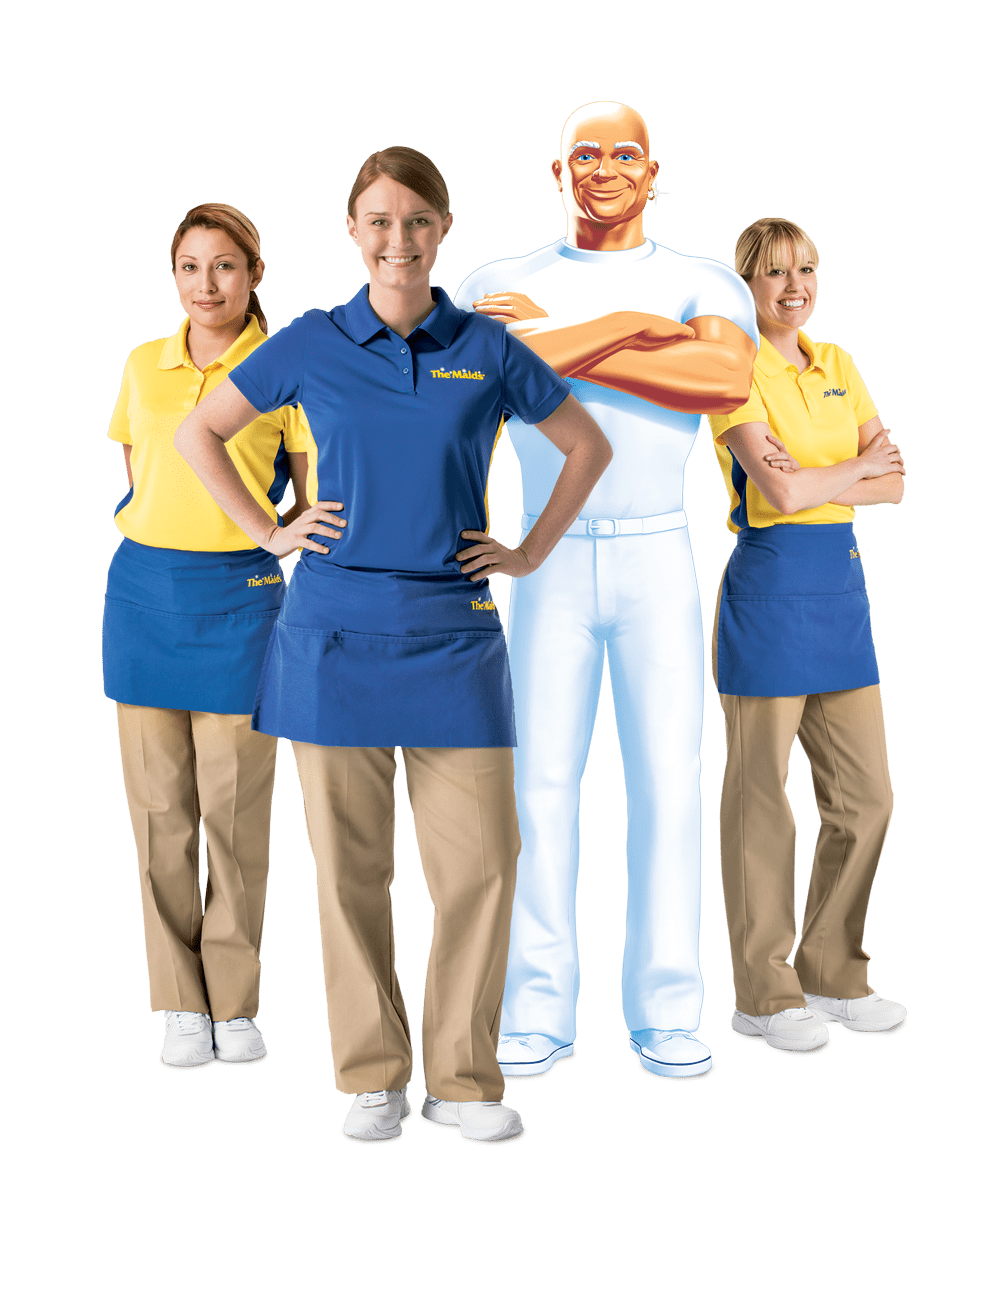 The Maids House Cleaning - The Maids in Las Vegas Home Cleaning